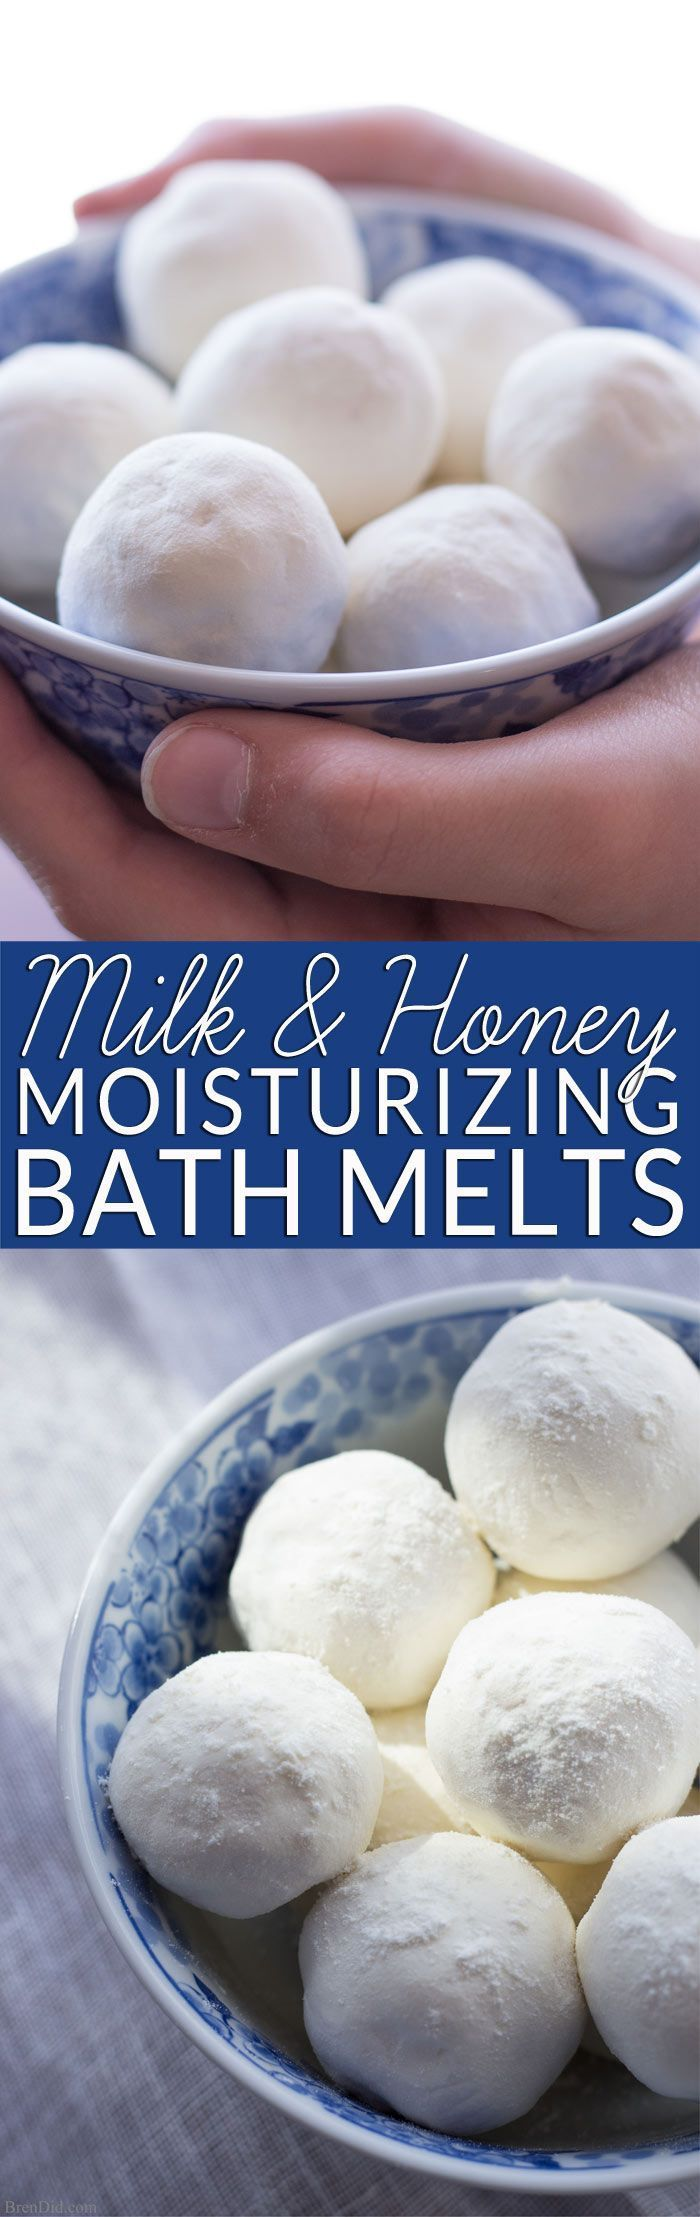 Homemade bath melts are the perfect way to soothe itchy skin while you soak. Get the easy recipe and learn why milk and honey are wonderful natural body care ingredients.